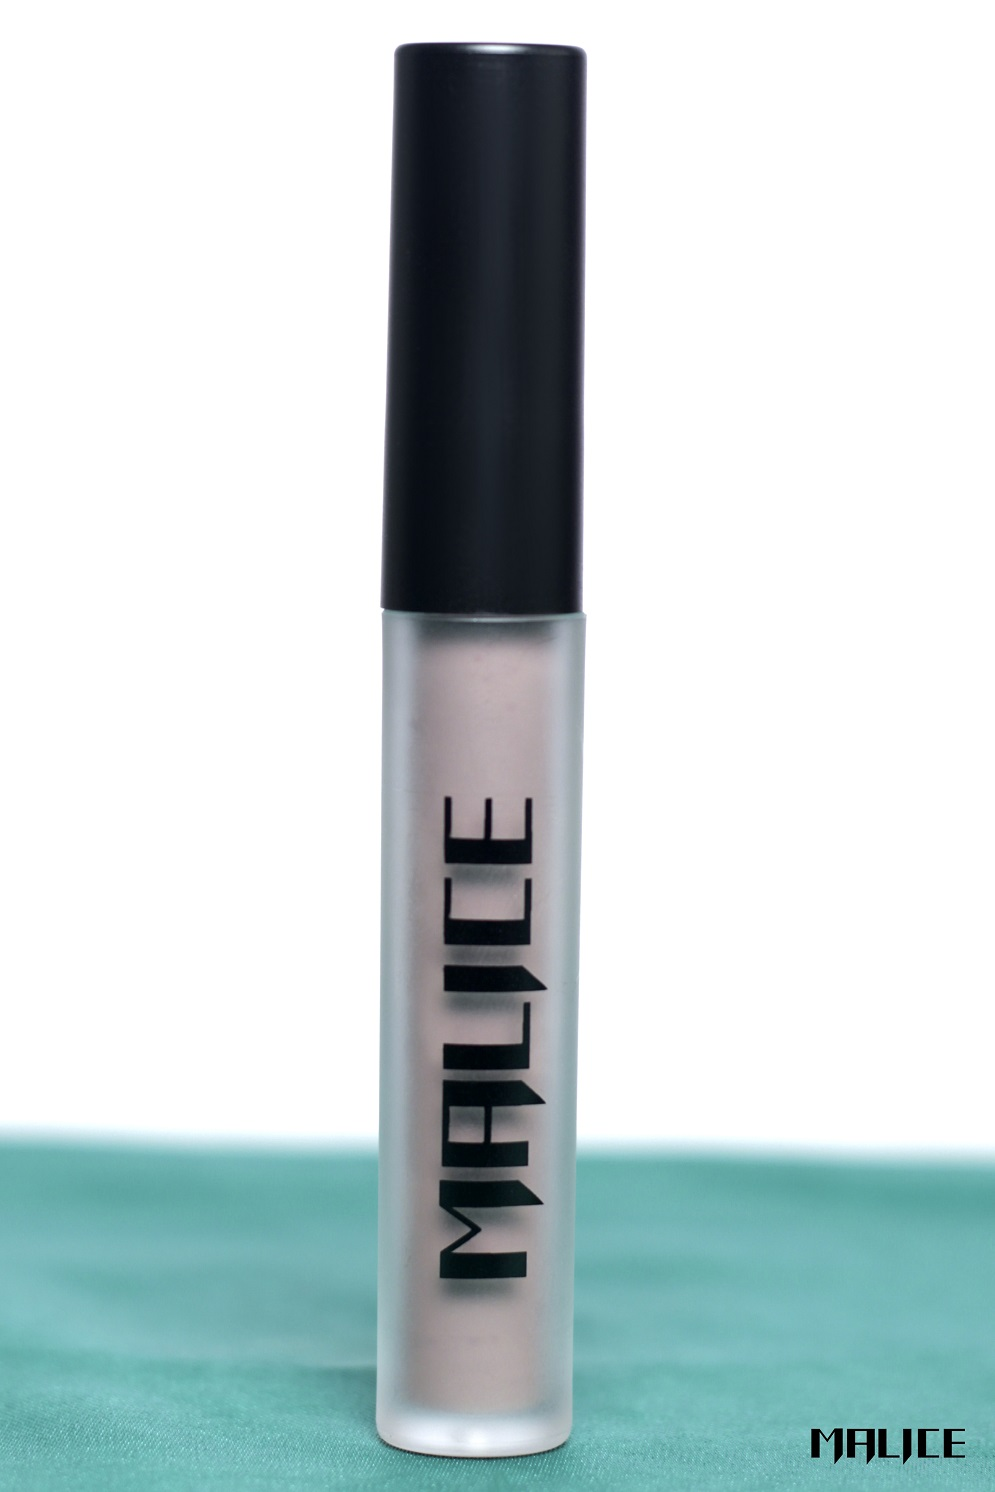 Malice Magnetic Lipstick